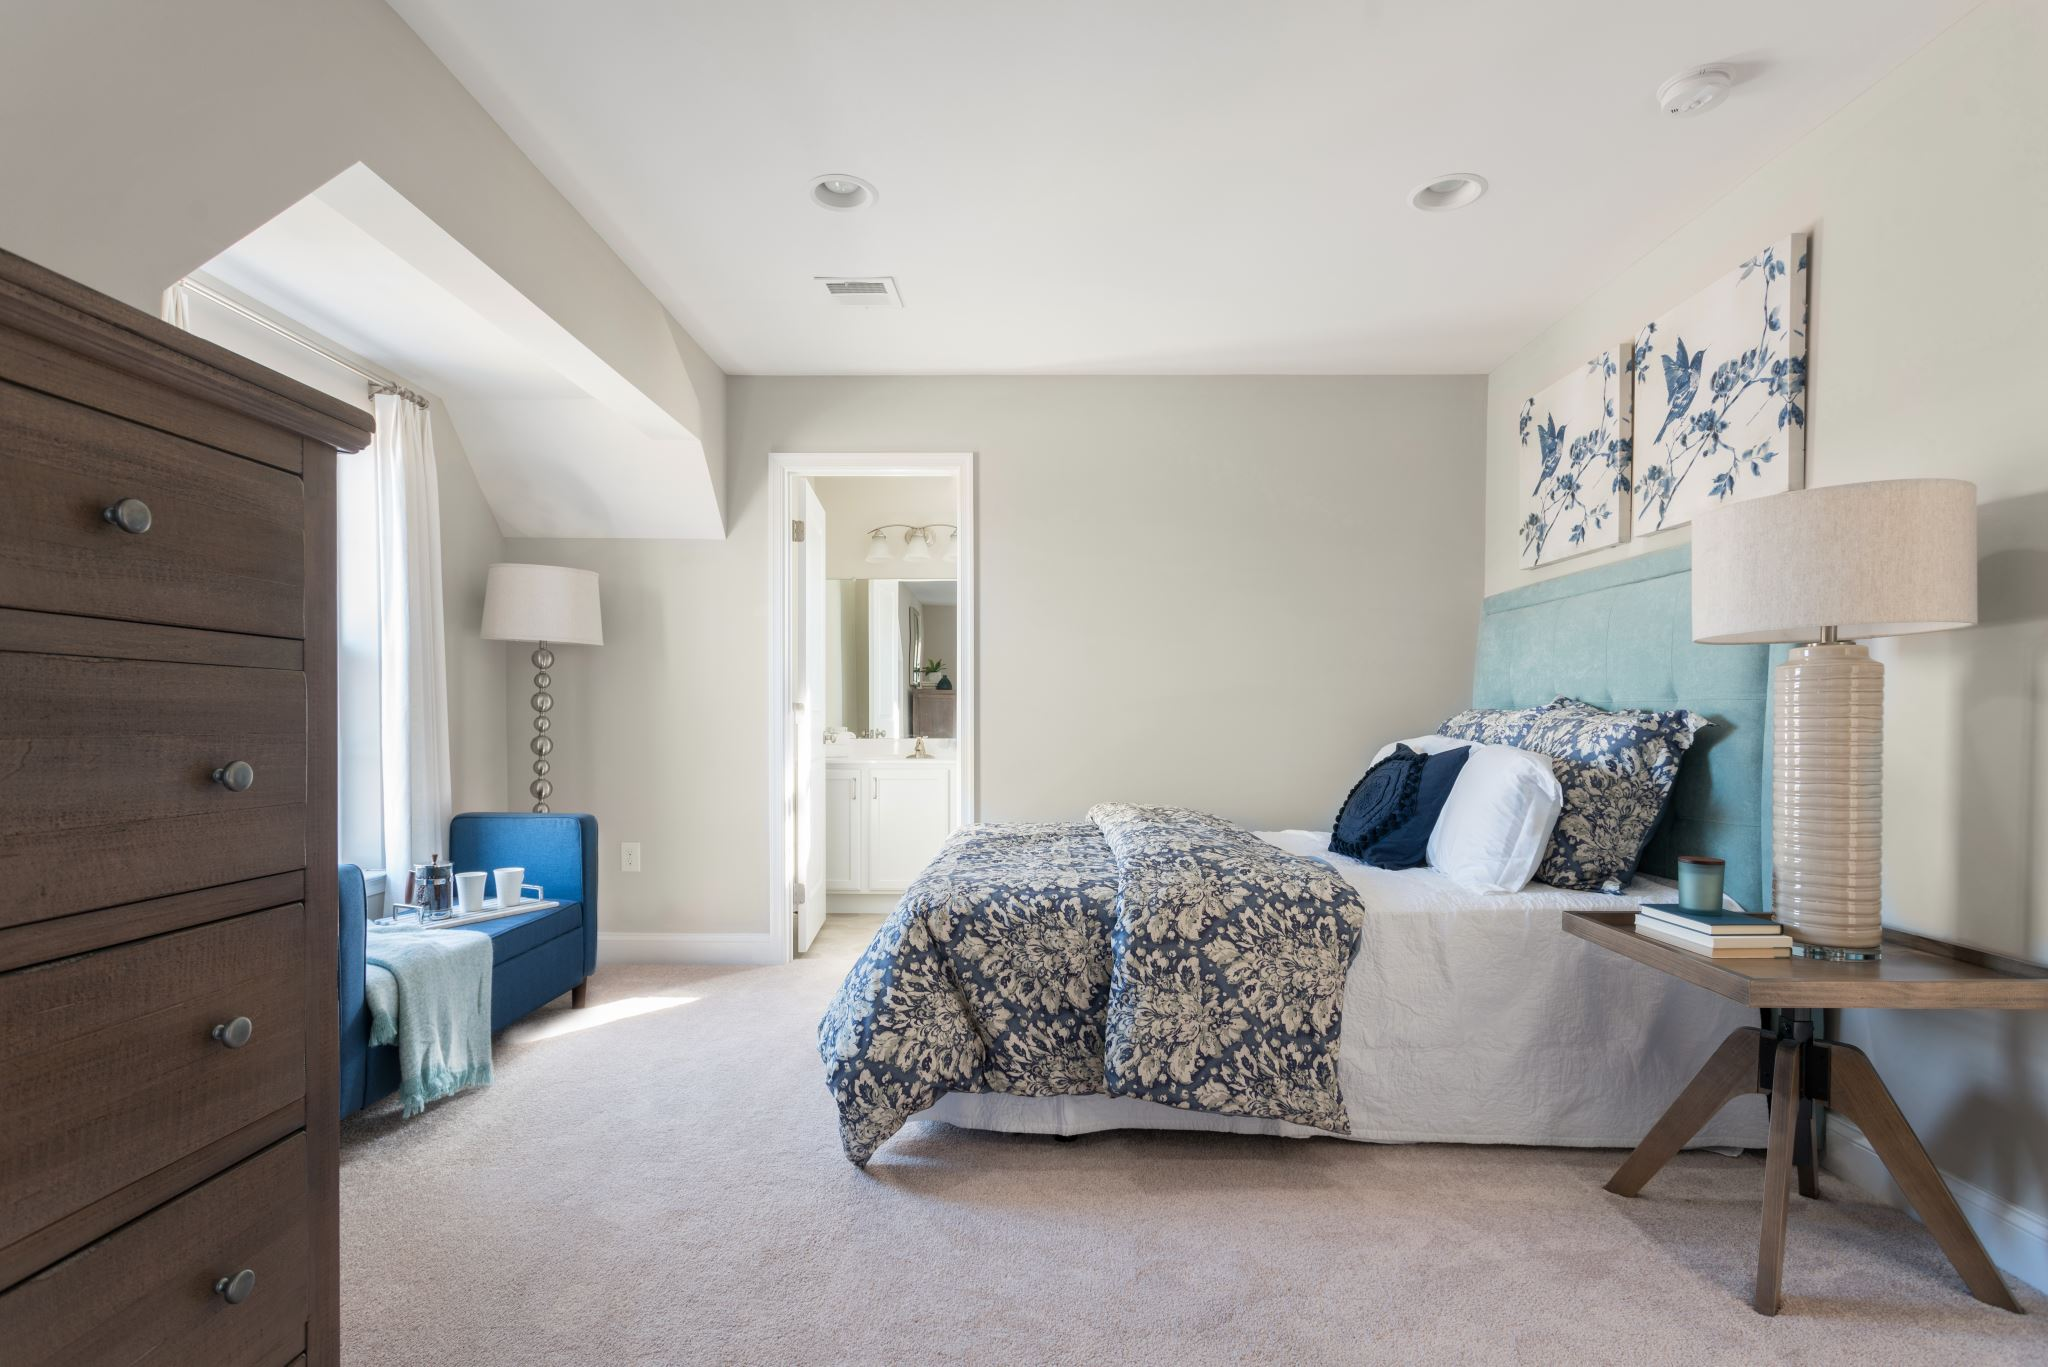 Bedroom featured in the Darlington By TH Properties in Philadelphia, PA